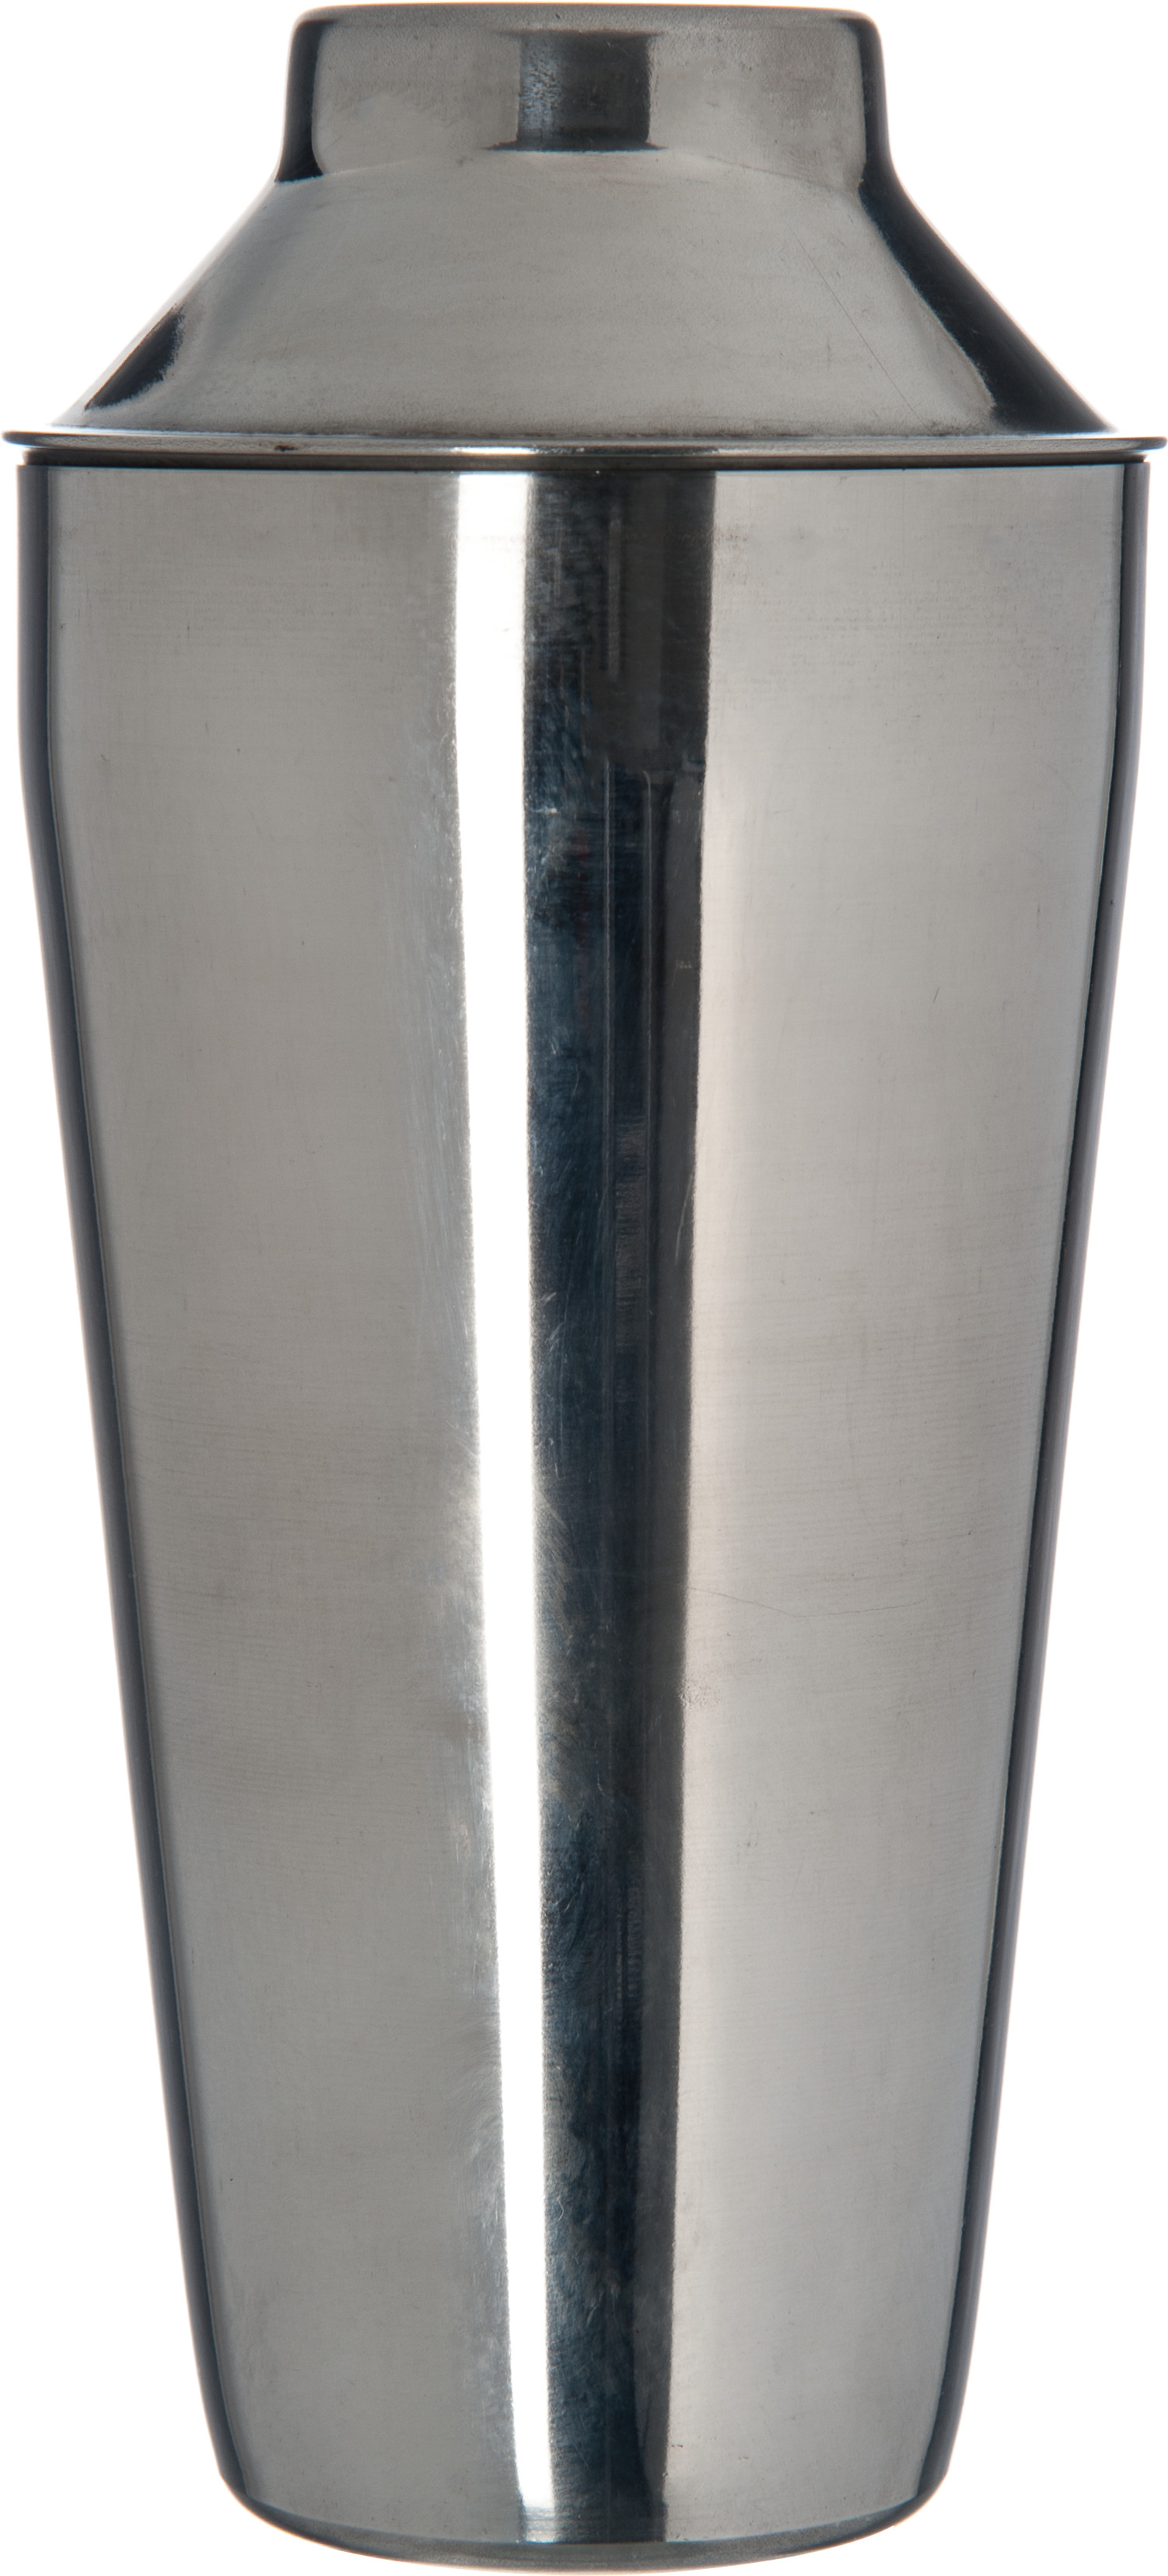 sugar mold glass vase inserts of enriched product listing intended for 266460